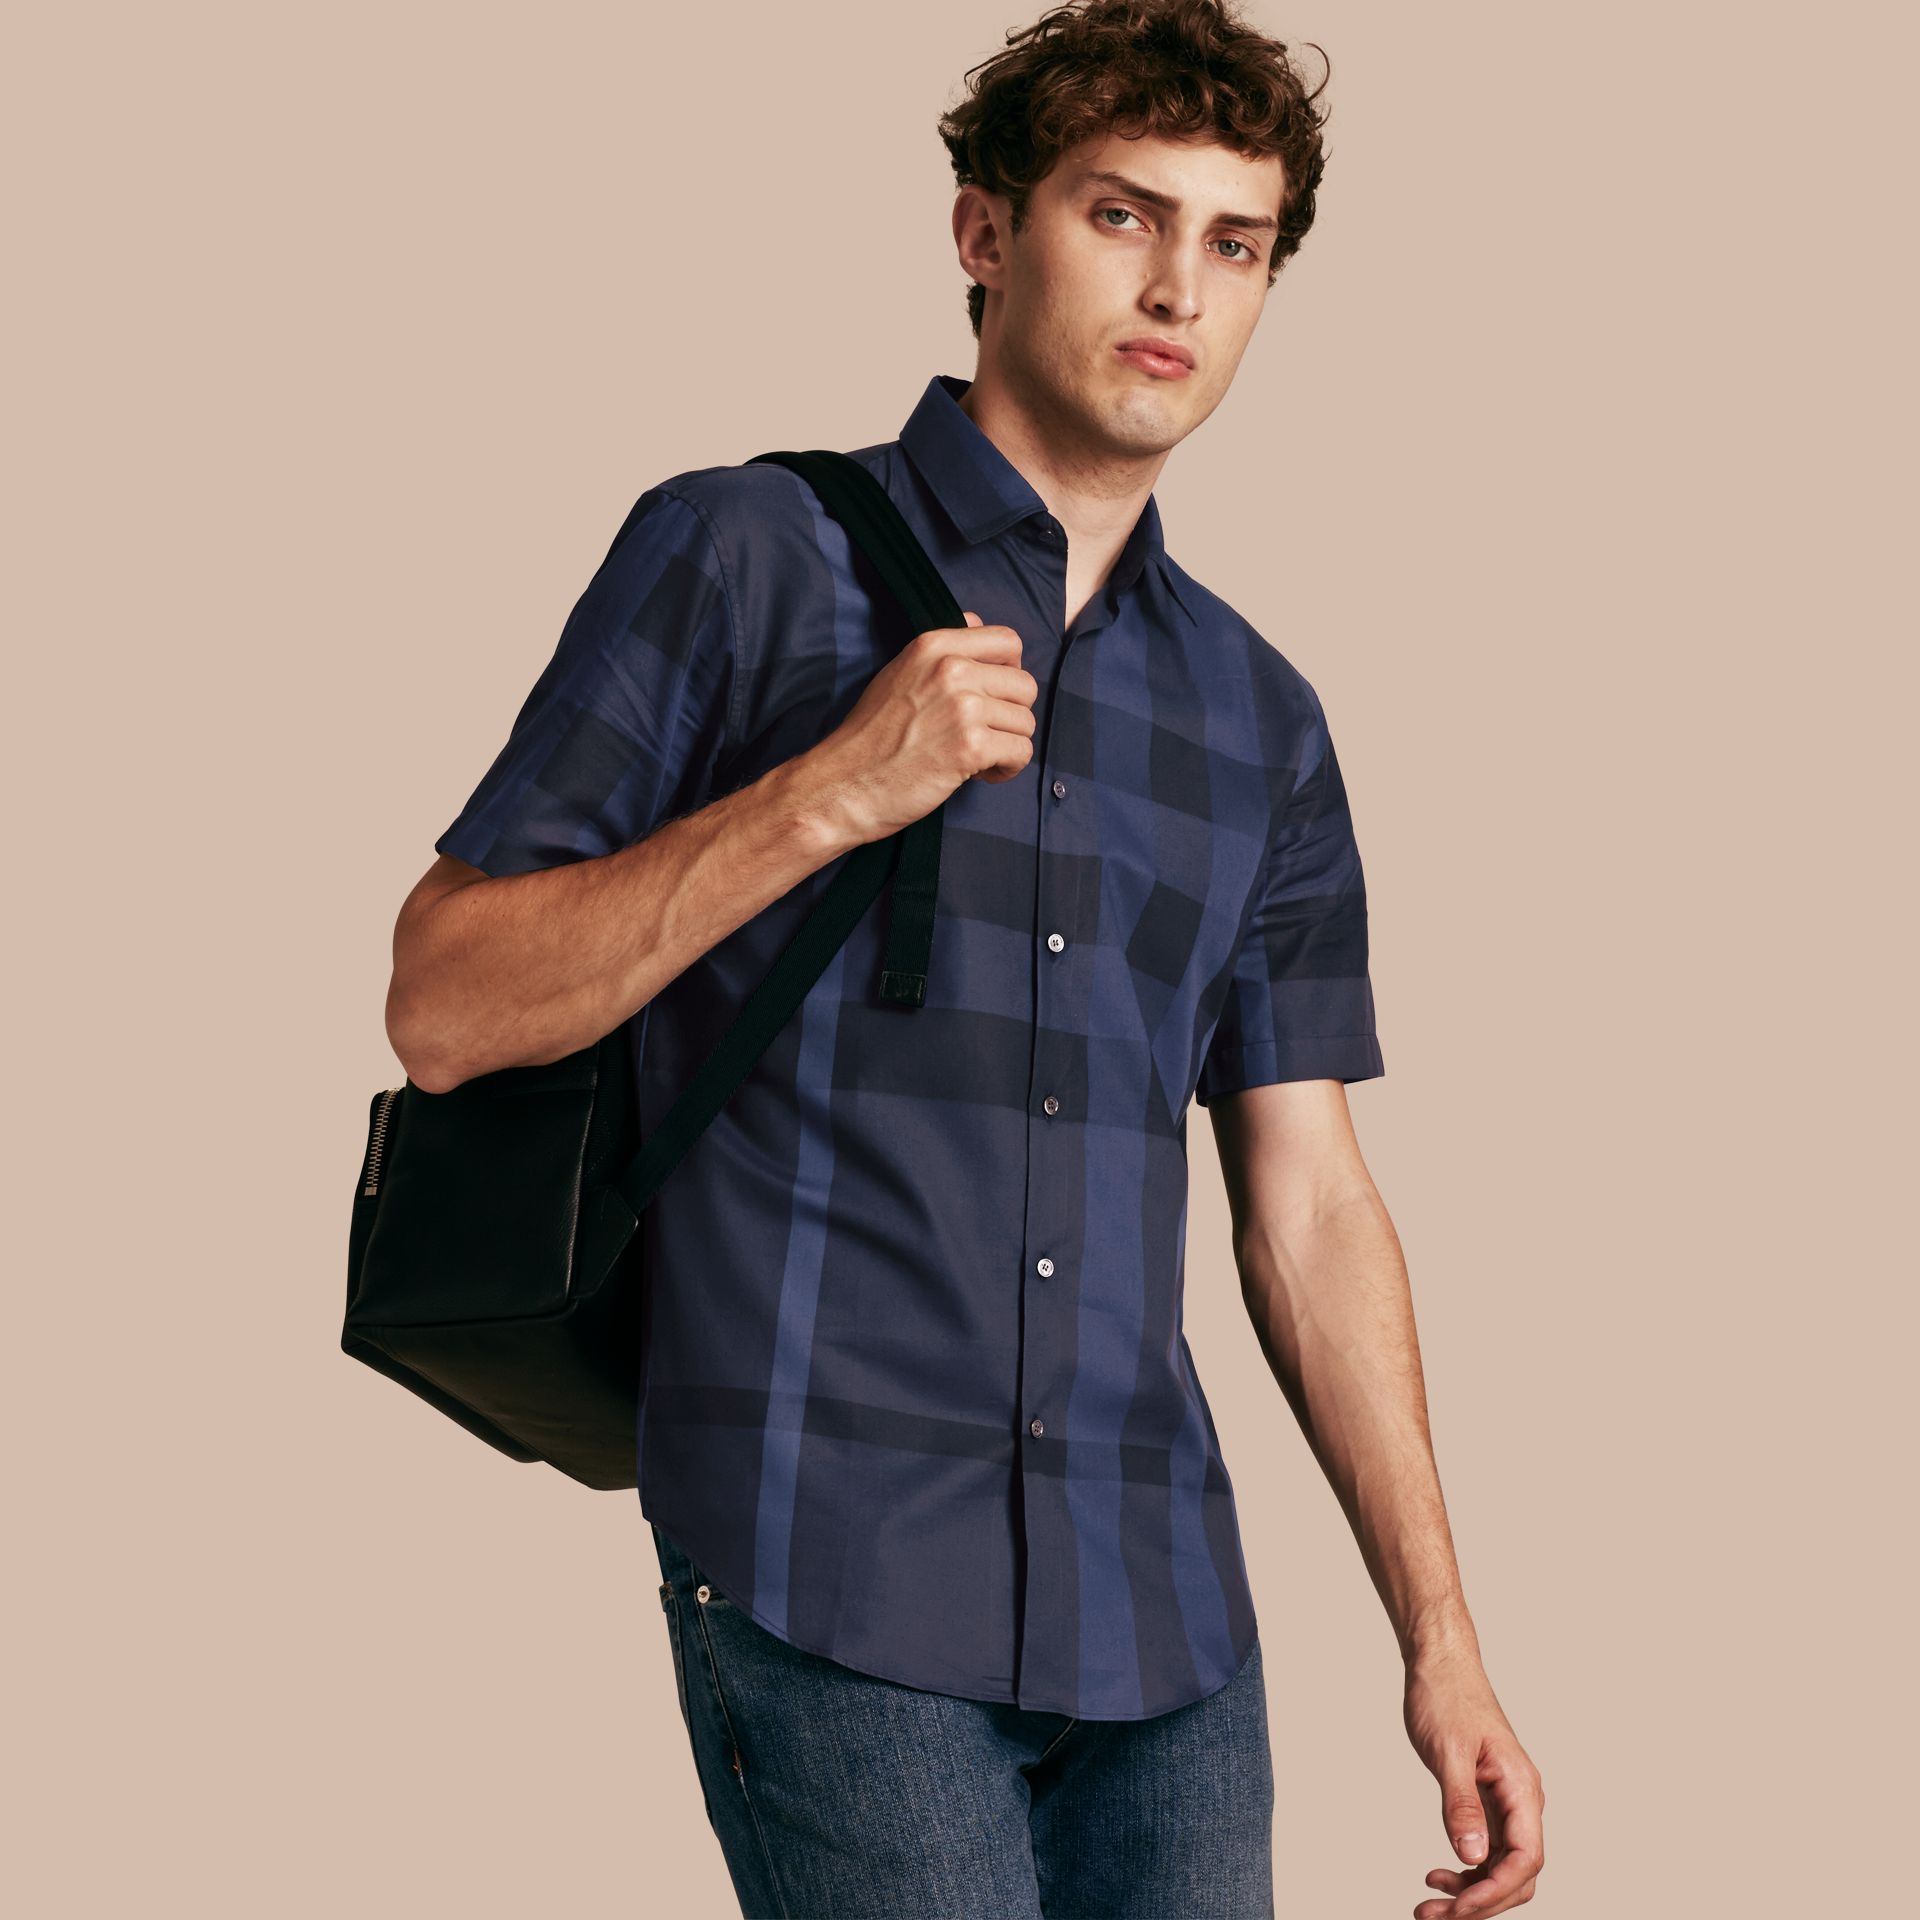 Navy Short-sleeved Check Cotton Shirt Navy - gallery image 1